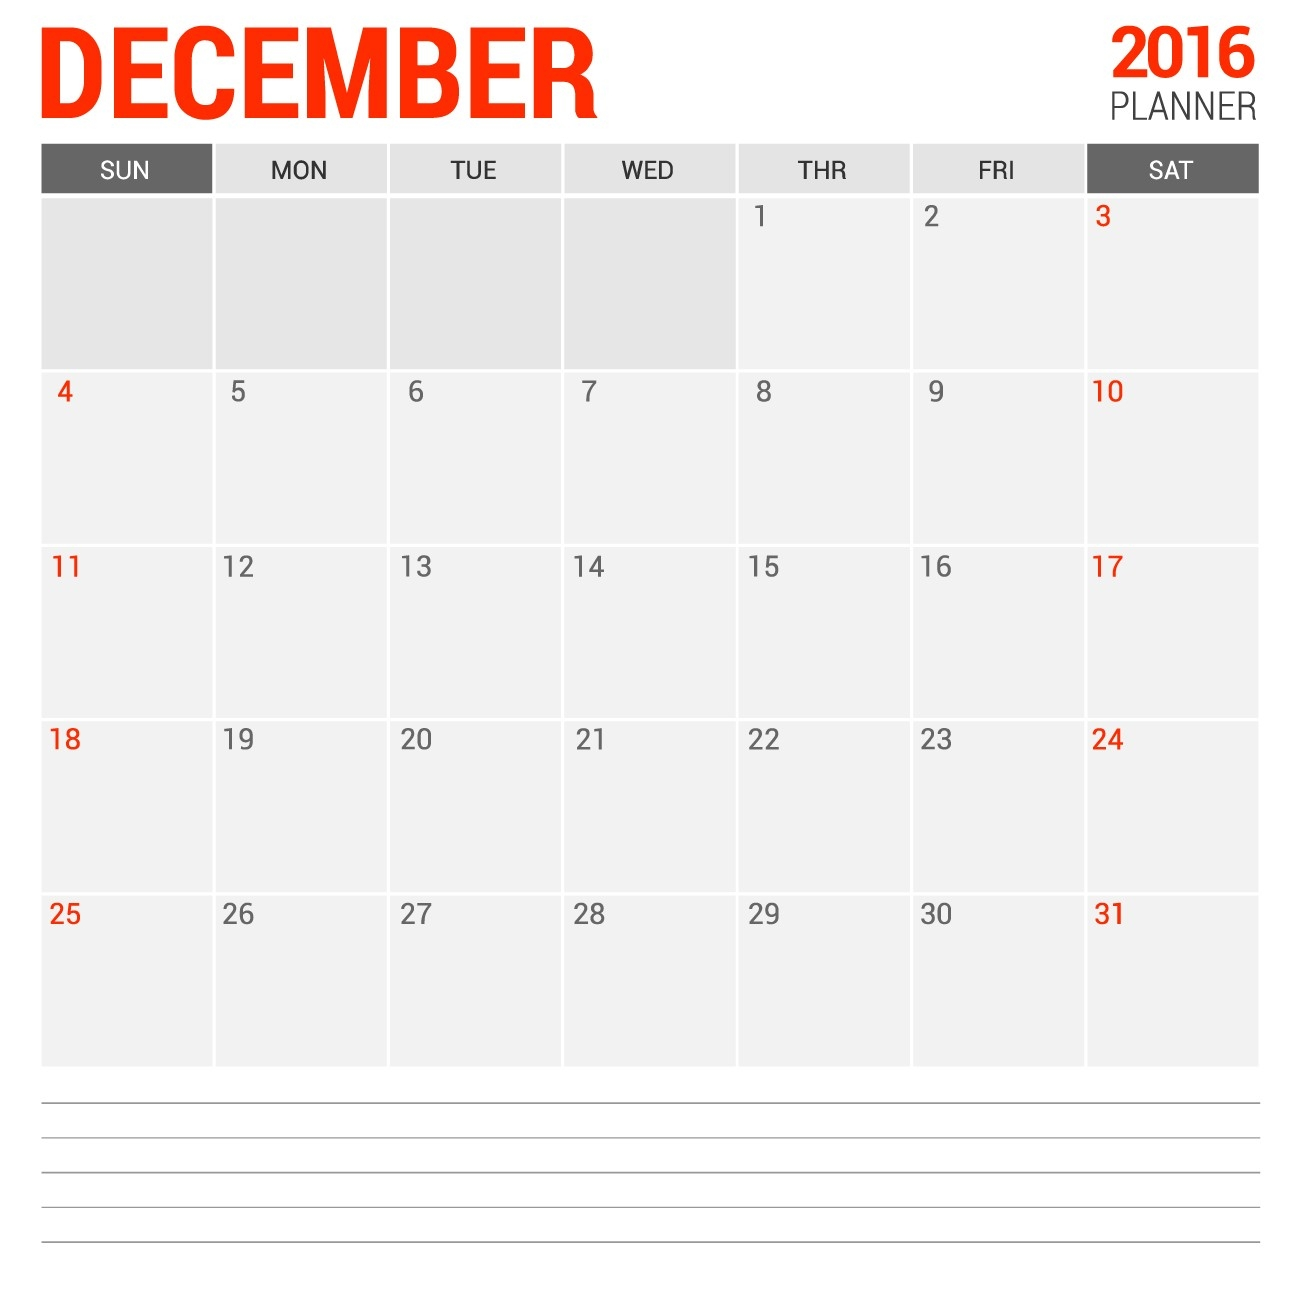 Empty Blank Calendar For December 2016 | Calendars 2018-A Blank Page Of 31 Days Of A Calendar